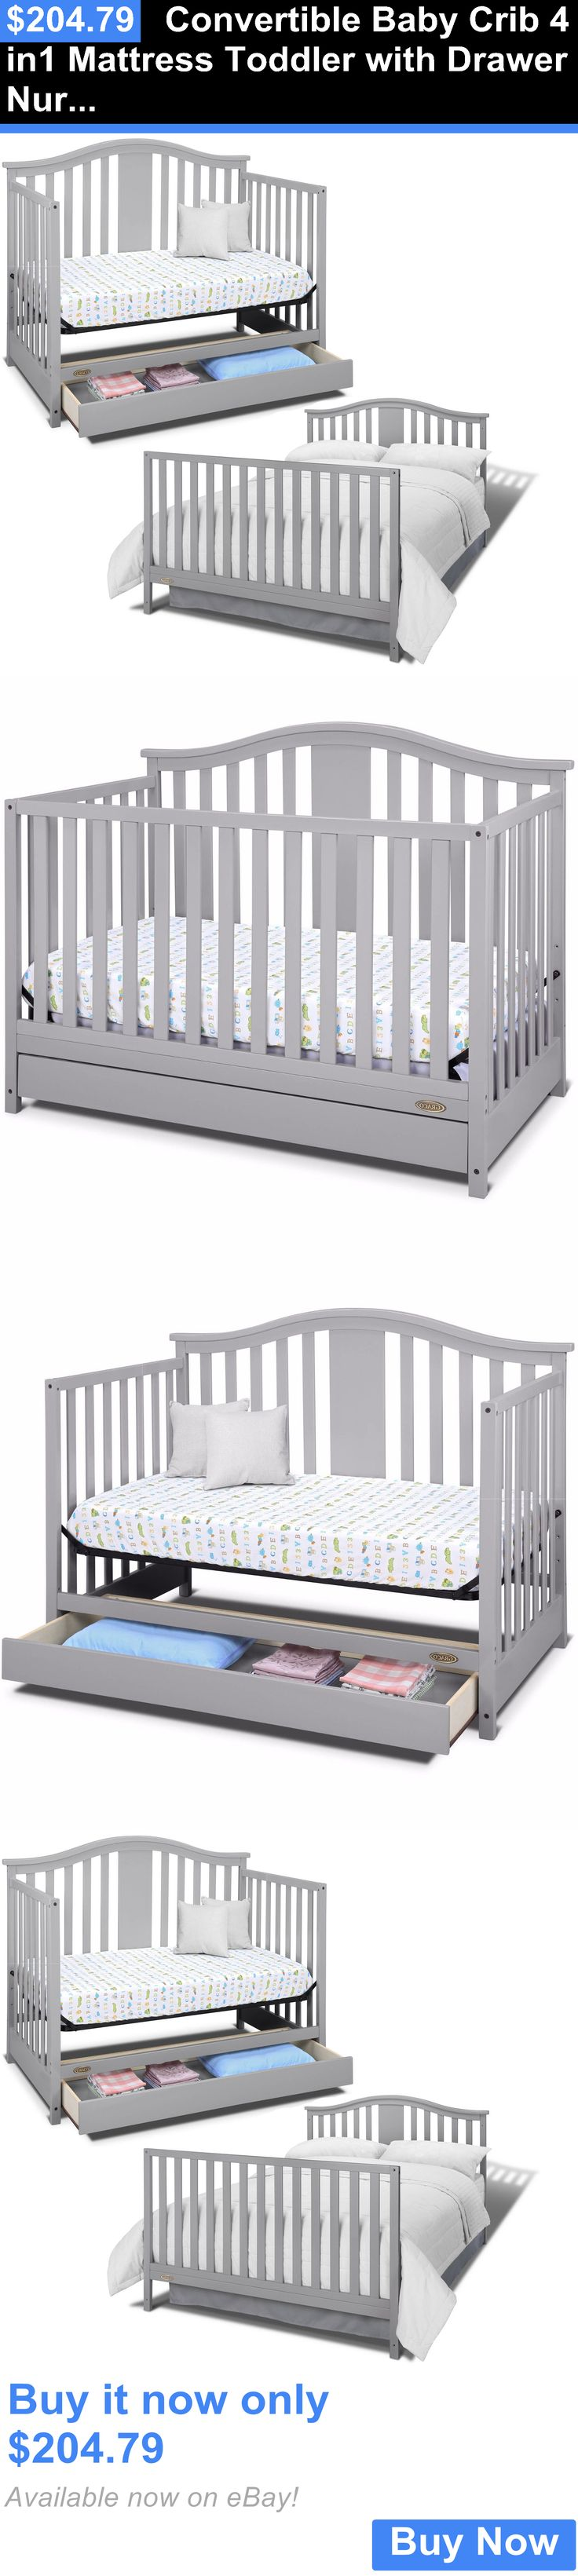 Used crib for sale ebay - Baby Nursery Convertible Baby Crib 4 In1 Mattress Toddler With Drawer Nursery Bed Pebble Gray